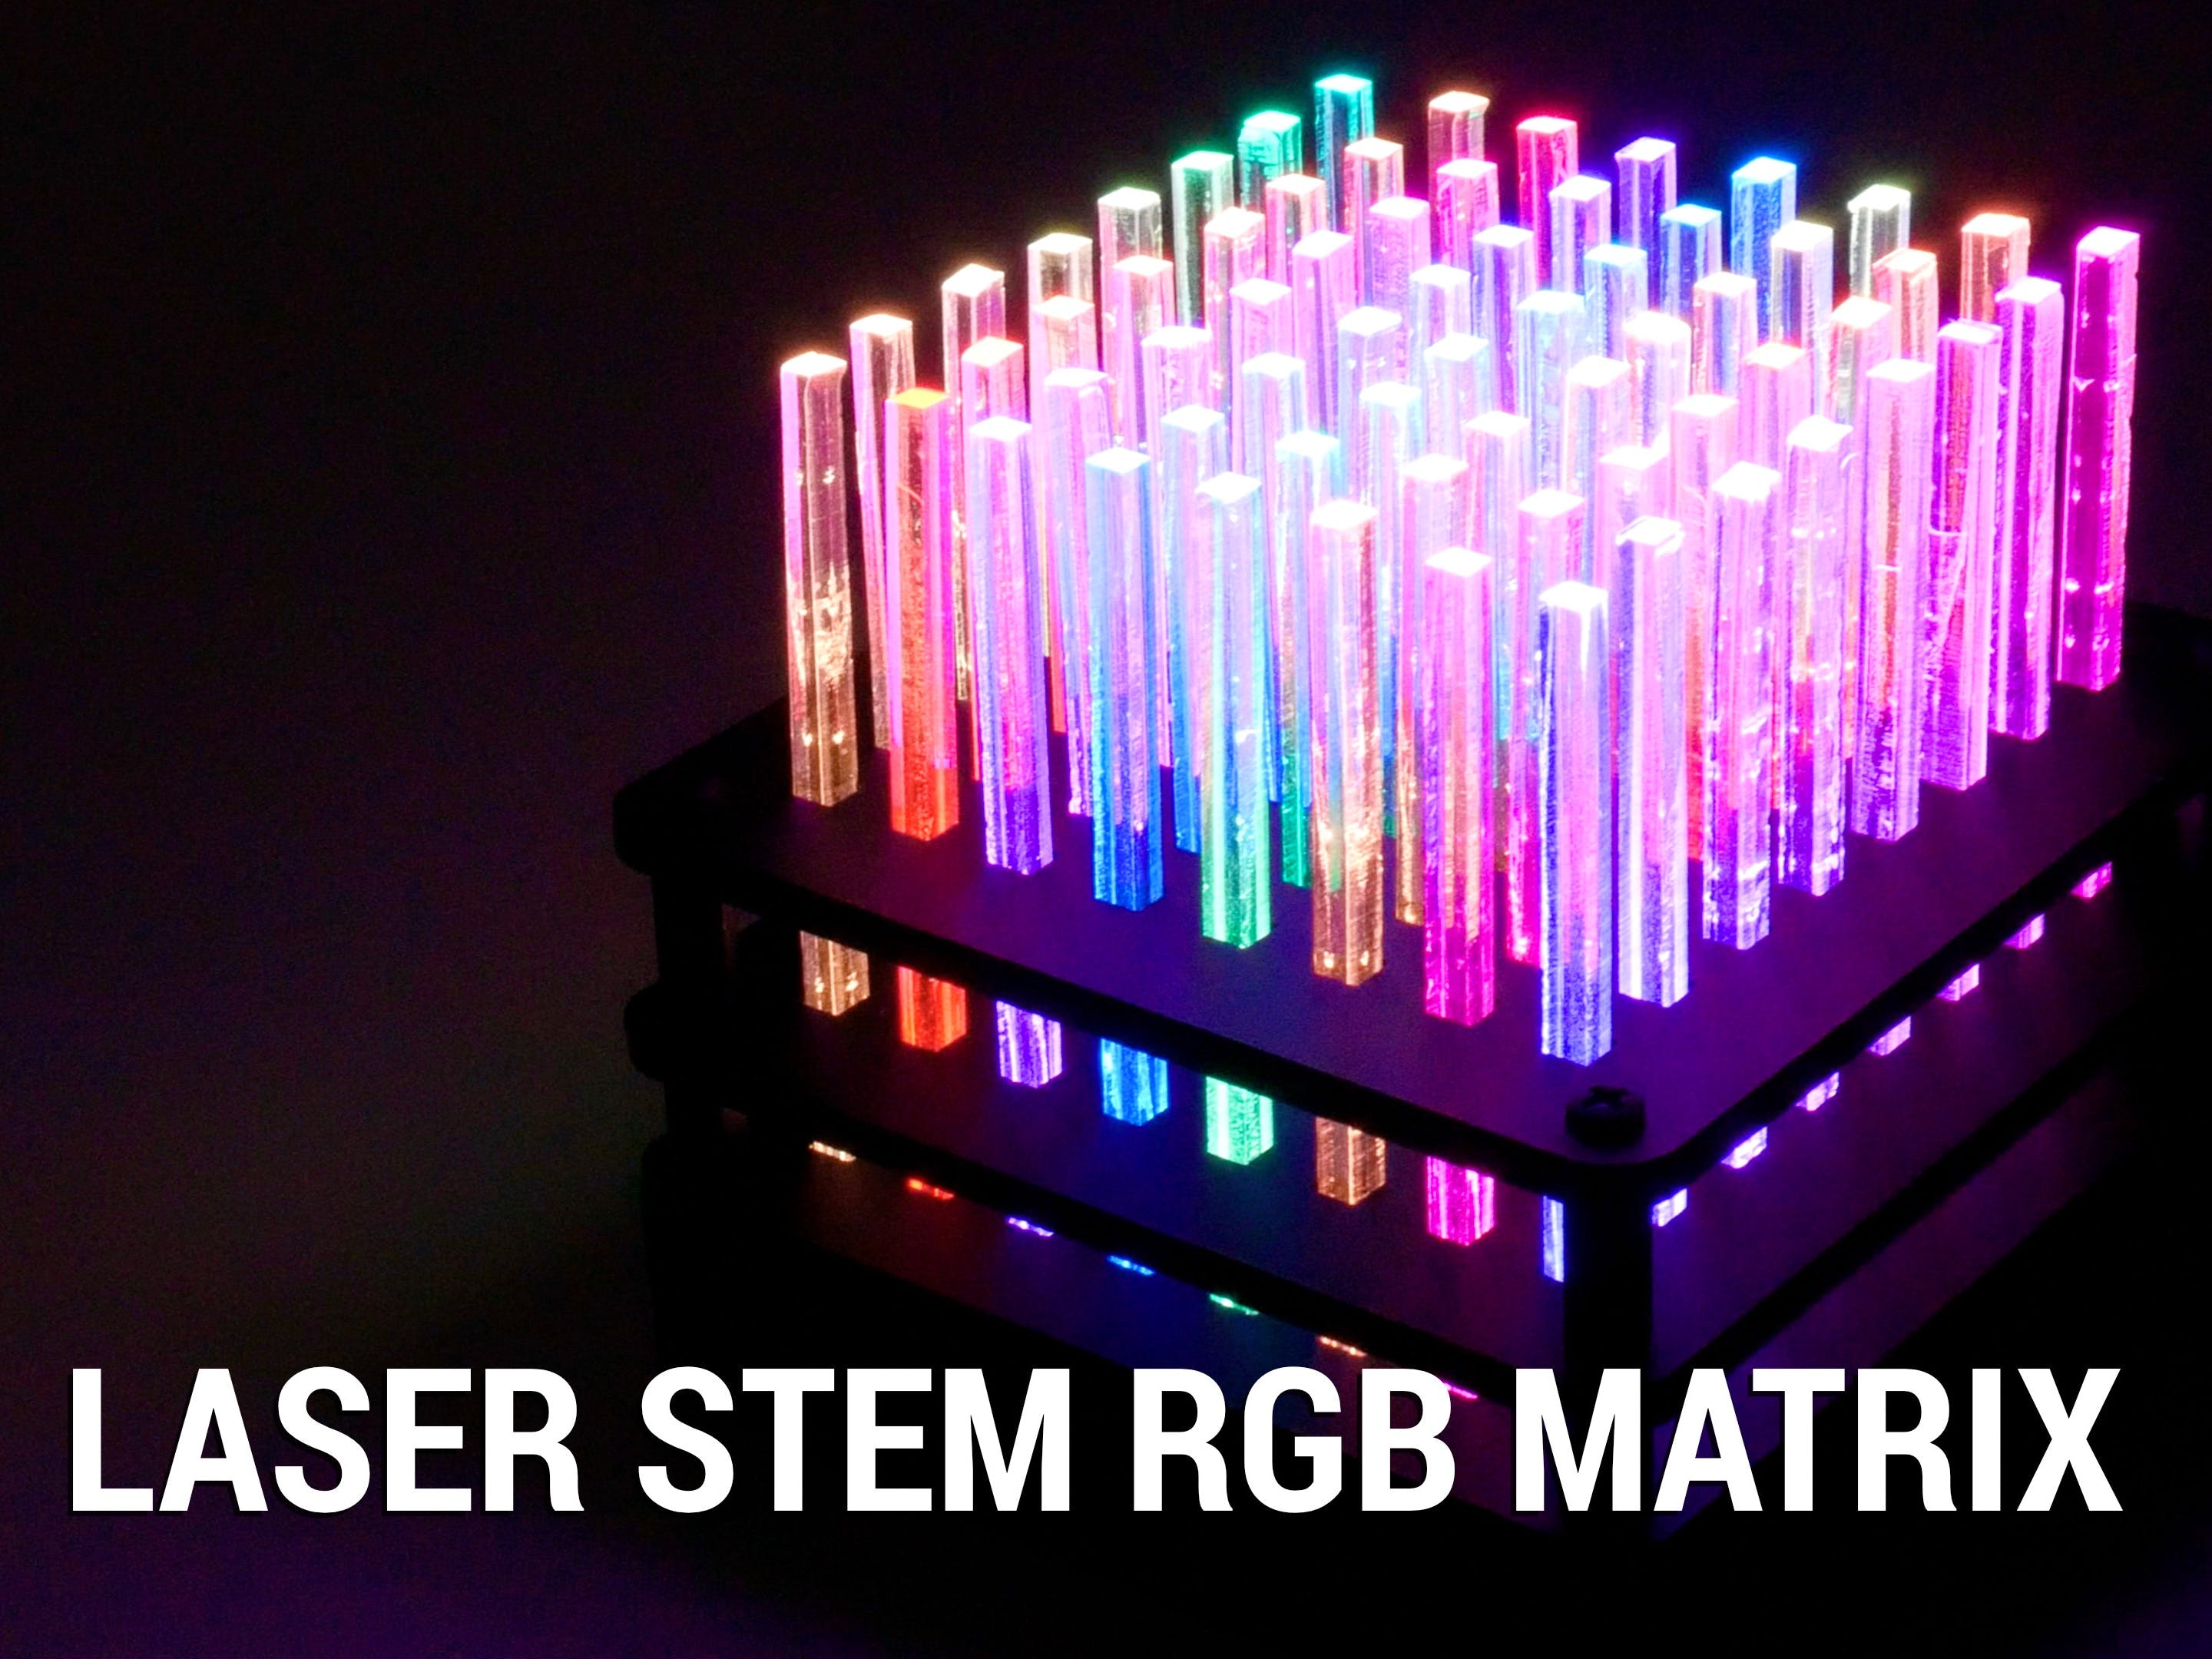 Laser Stem RGB Matrix